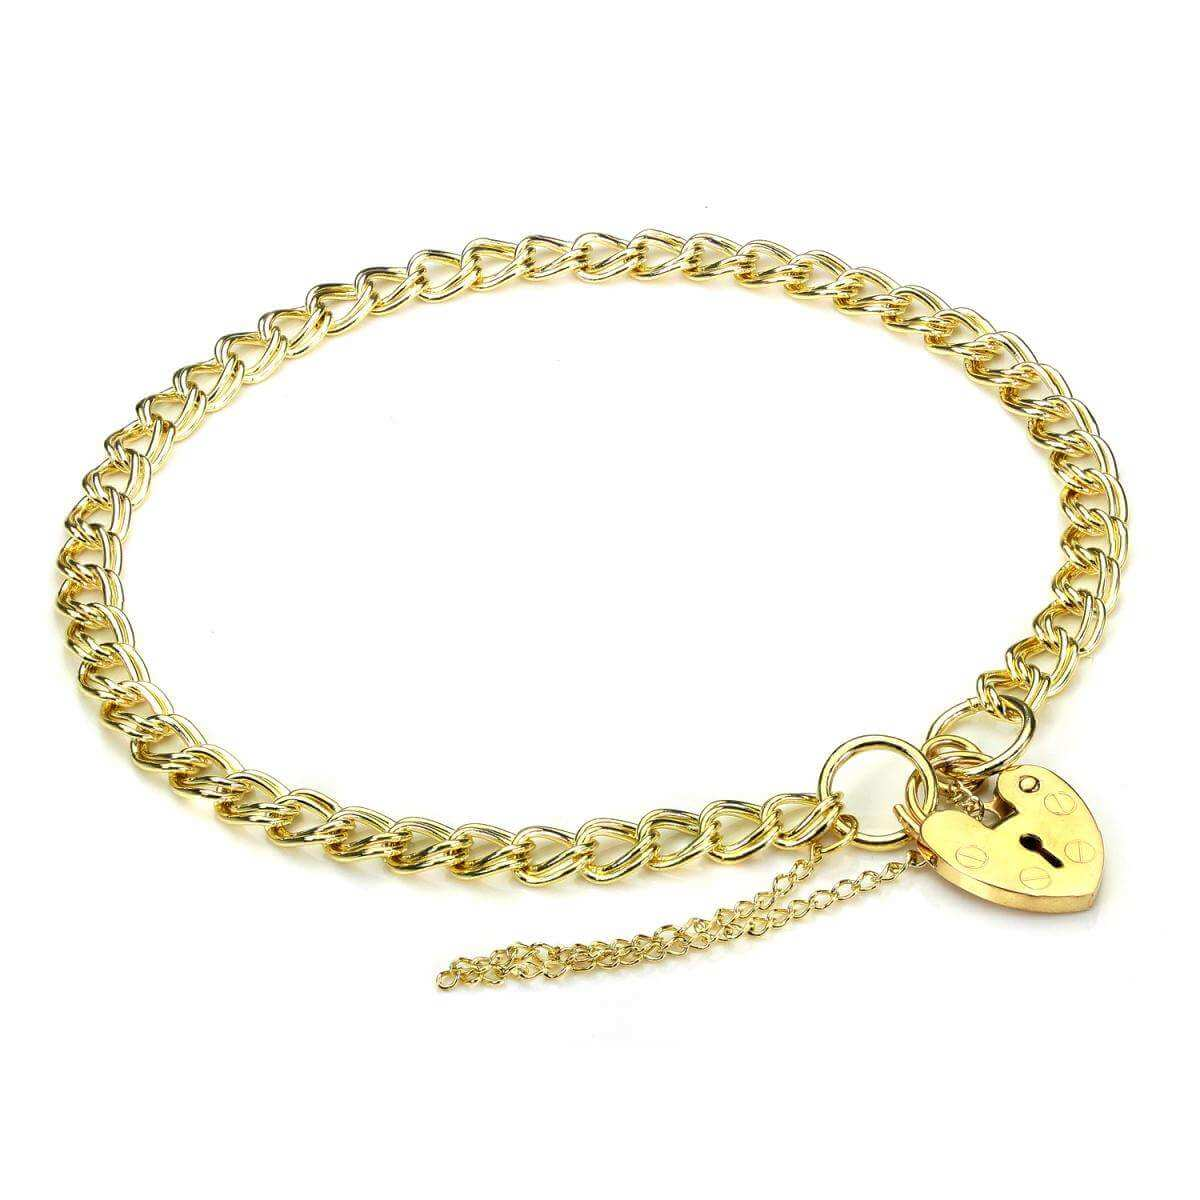 Light Double Curb Heart Padlock Charm Bracelet